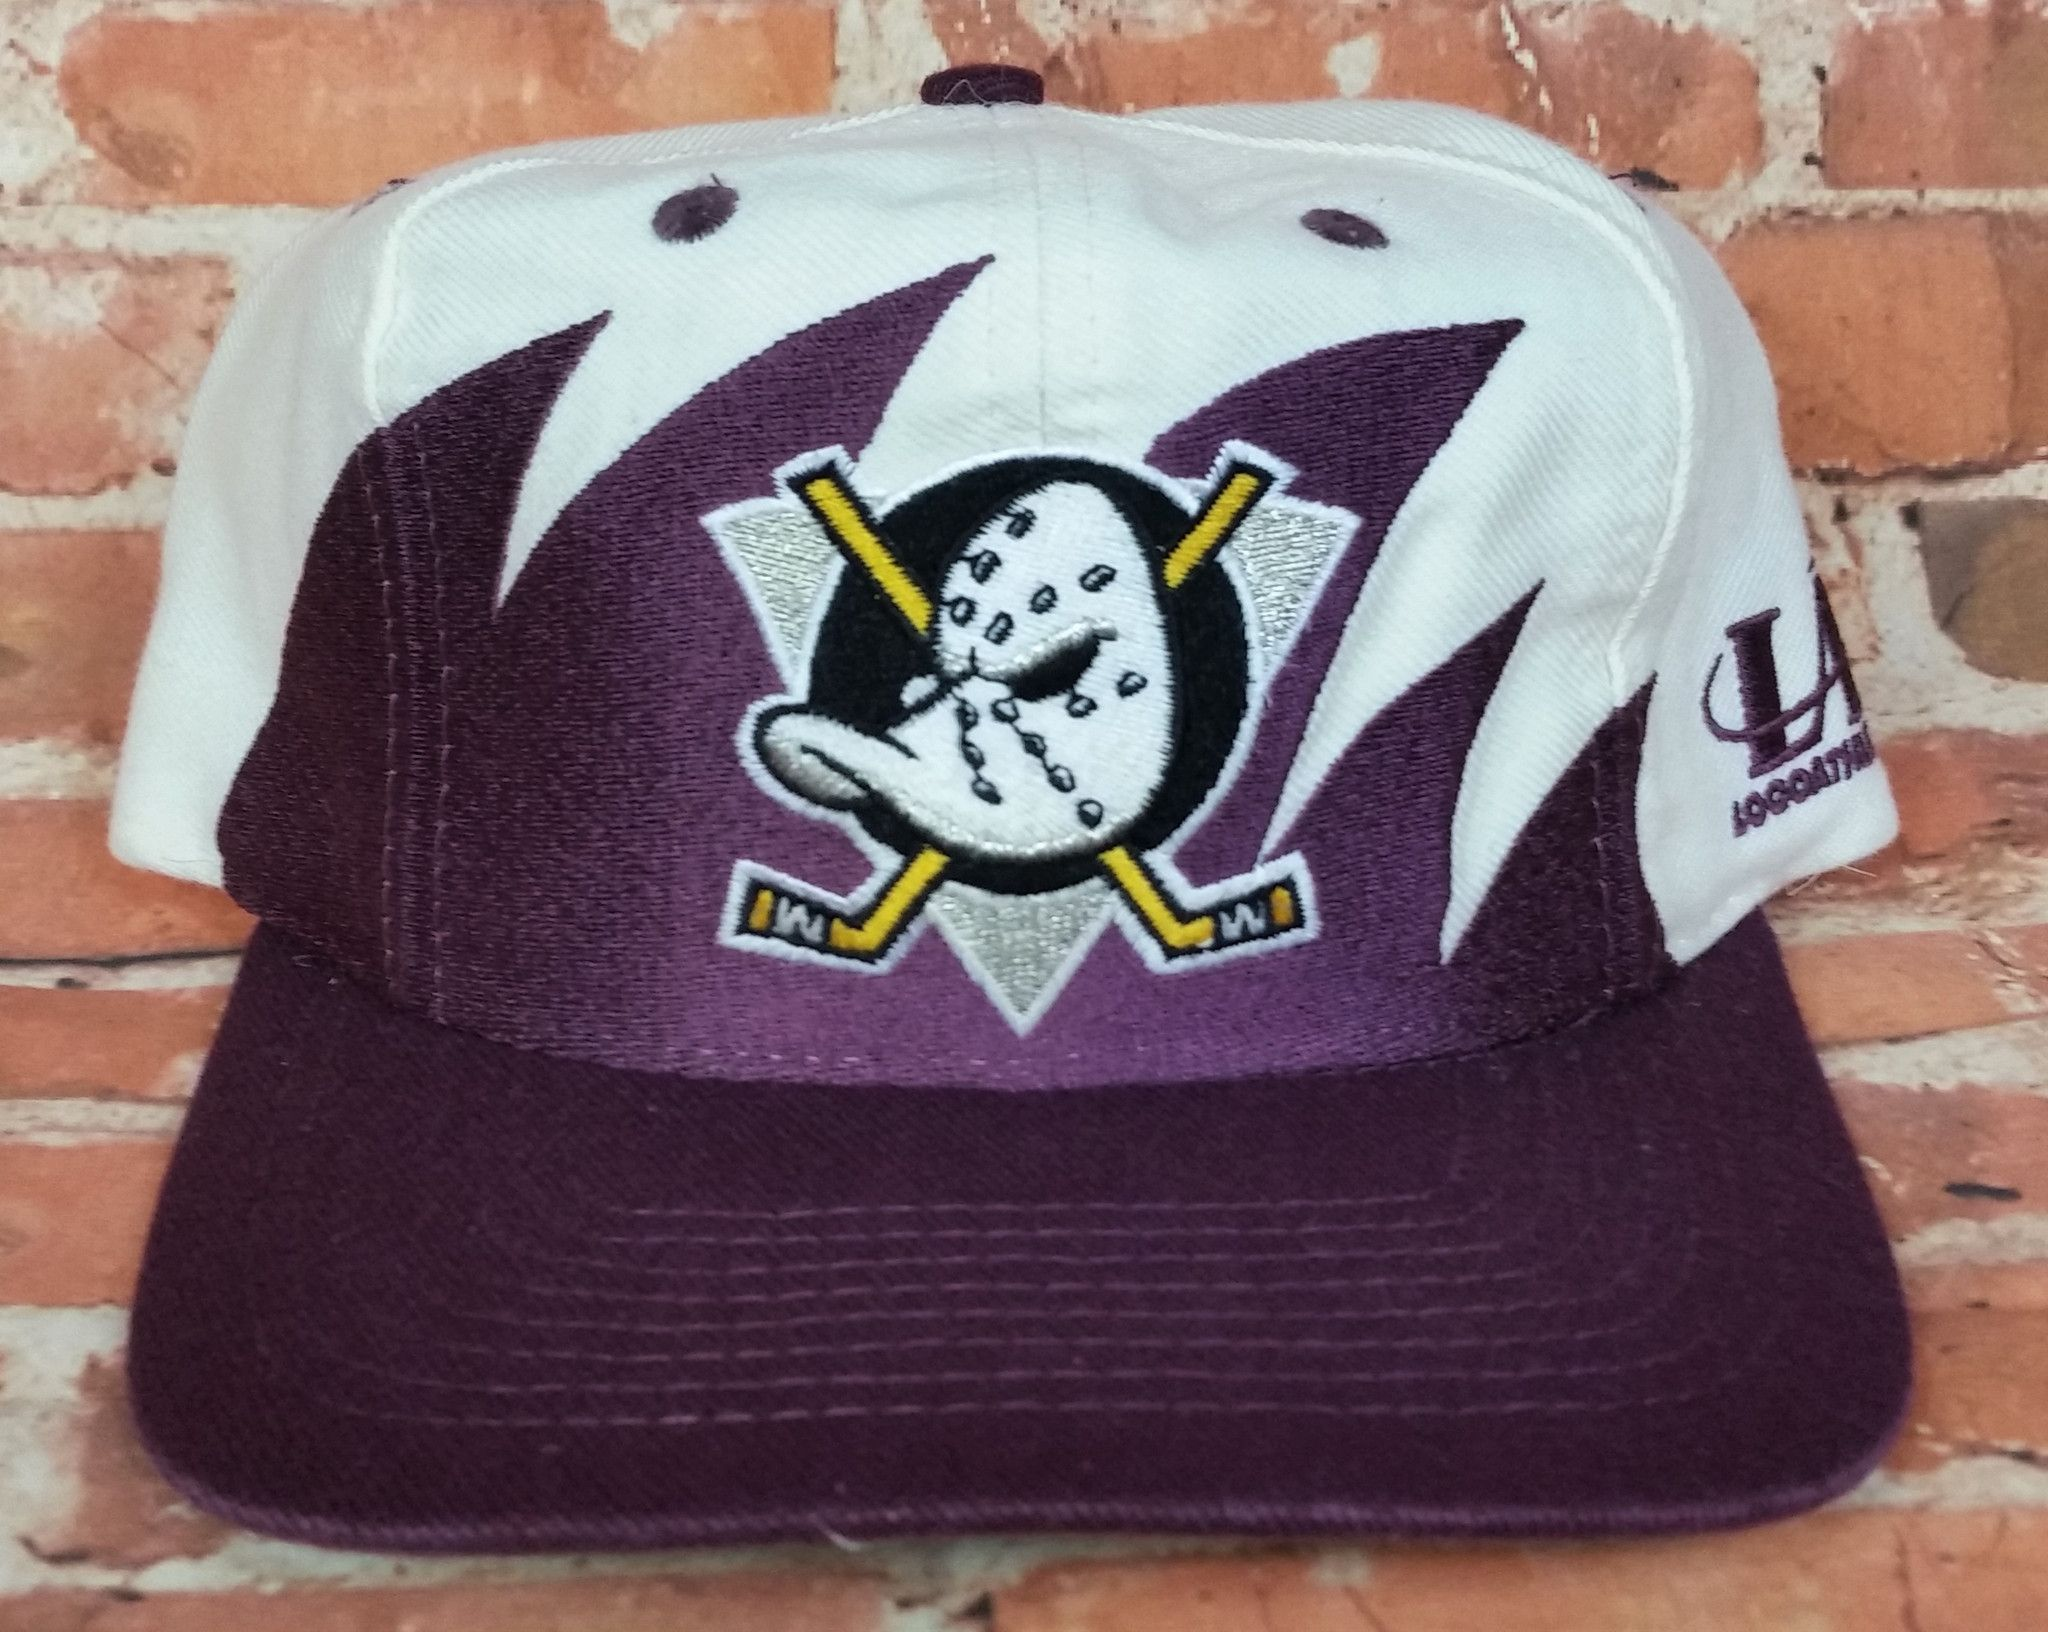 1e6686c01 Anaheim Mighty Ducks Vintage Snapback Logo Athletic Sharktooth Hat ...